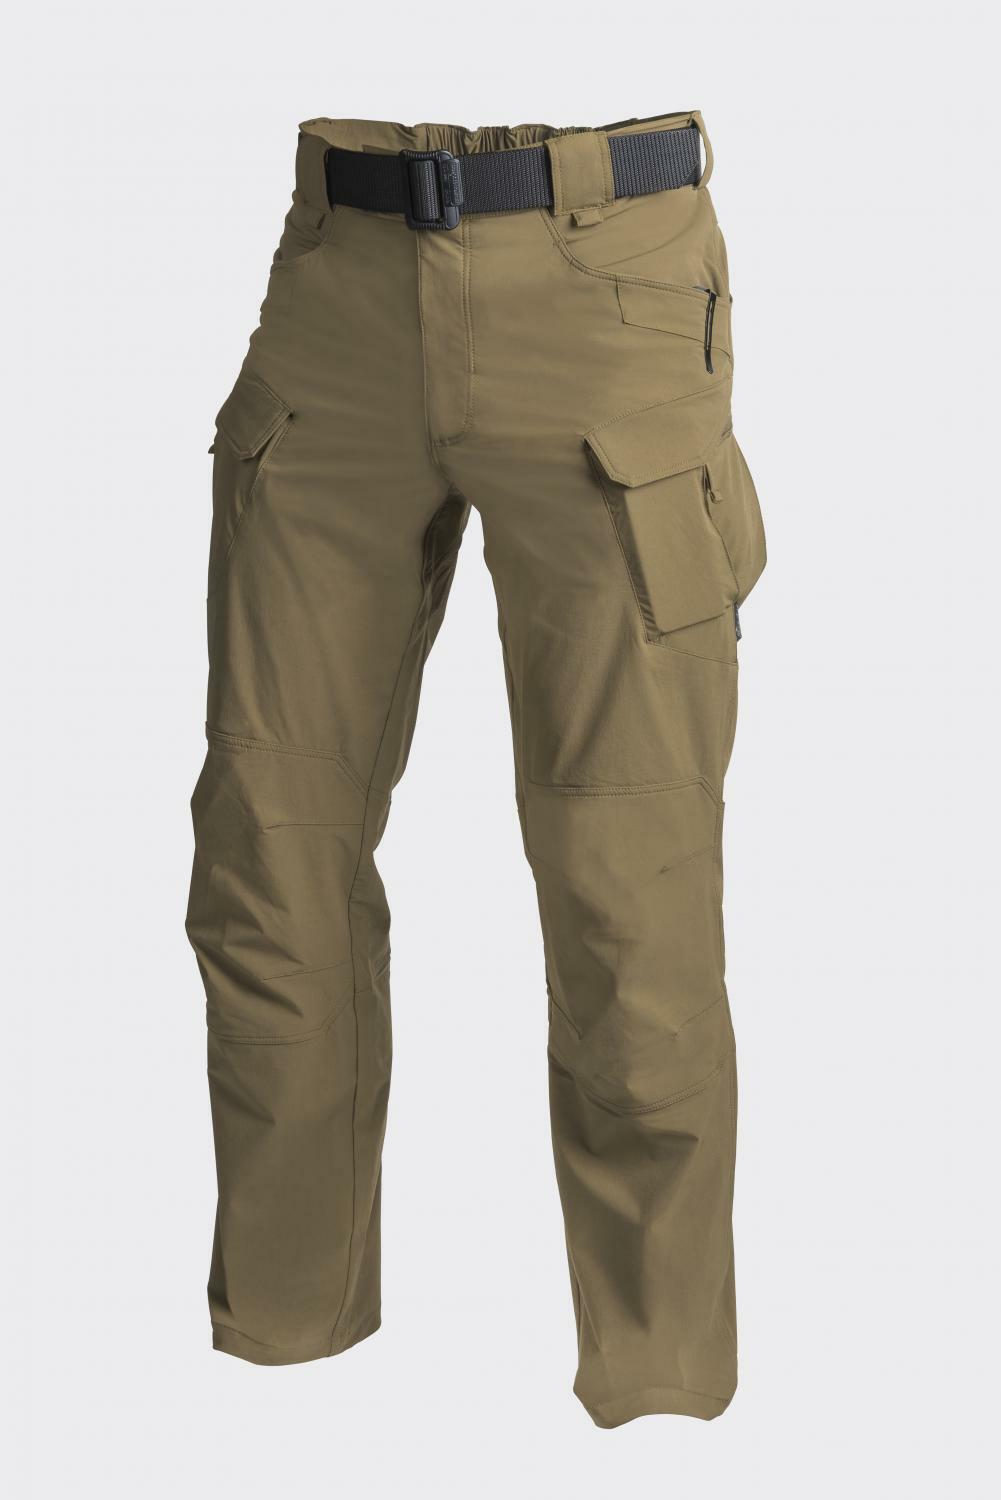 HELIKON TEX OTP OUTDOOR Trekking Freizeit PANTS Hose MUD MUD MUD braun Medium Regular  | Helle Farben